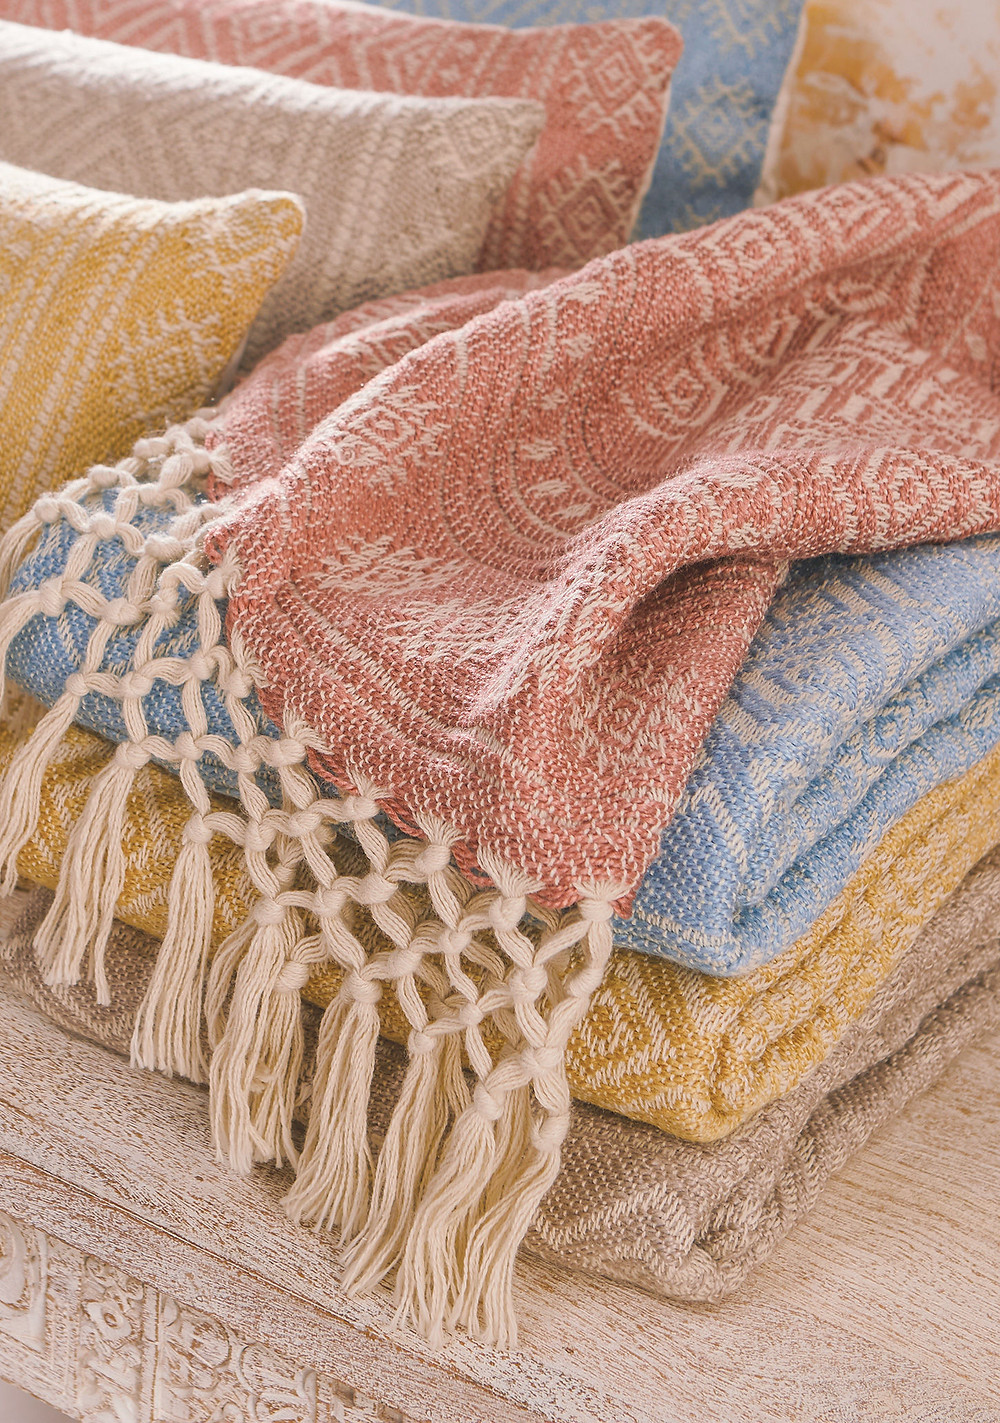 Recycled Plastic Bottle Eco-Friendly Ethical  washable throw picnic blanket